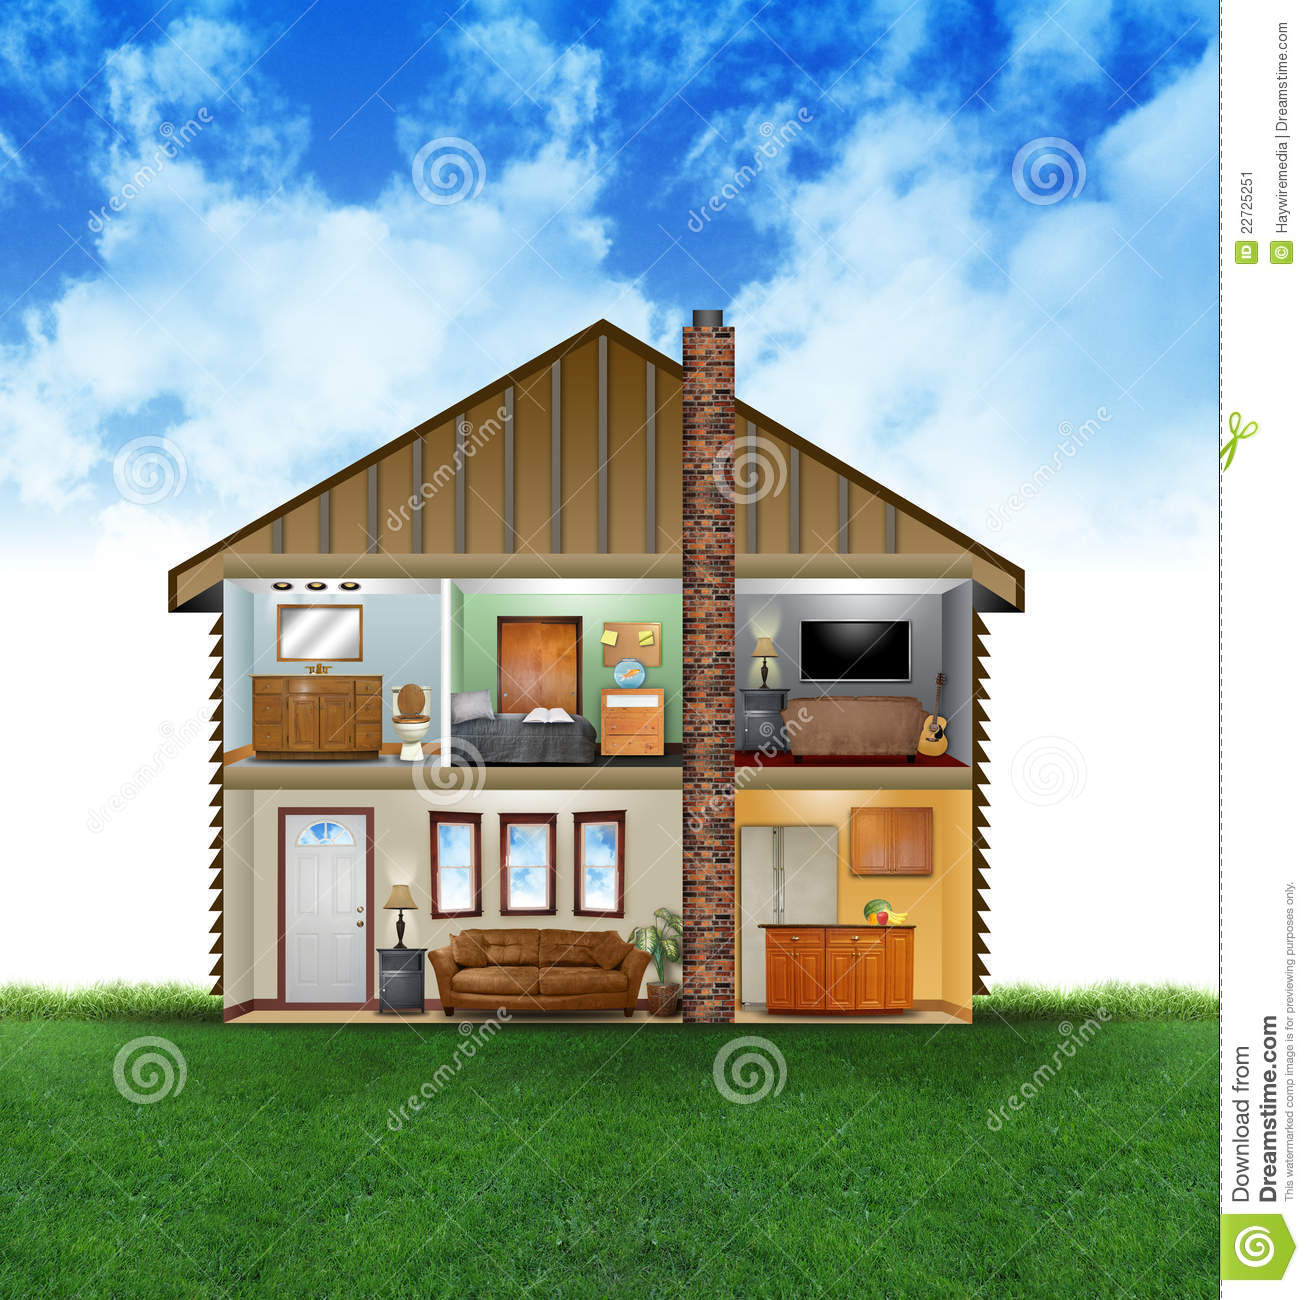 Eco Friendly House Images